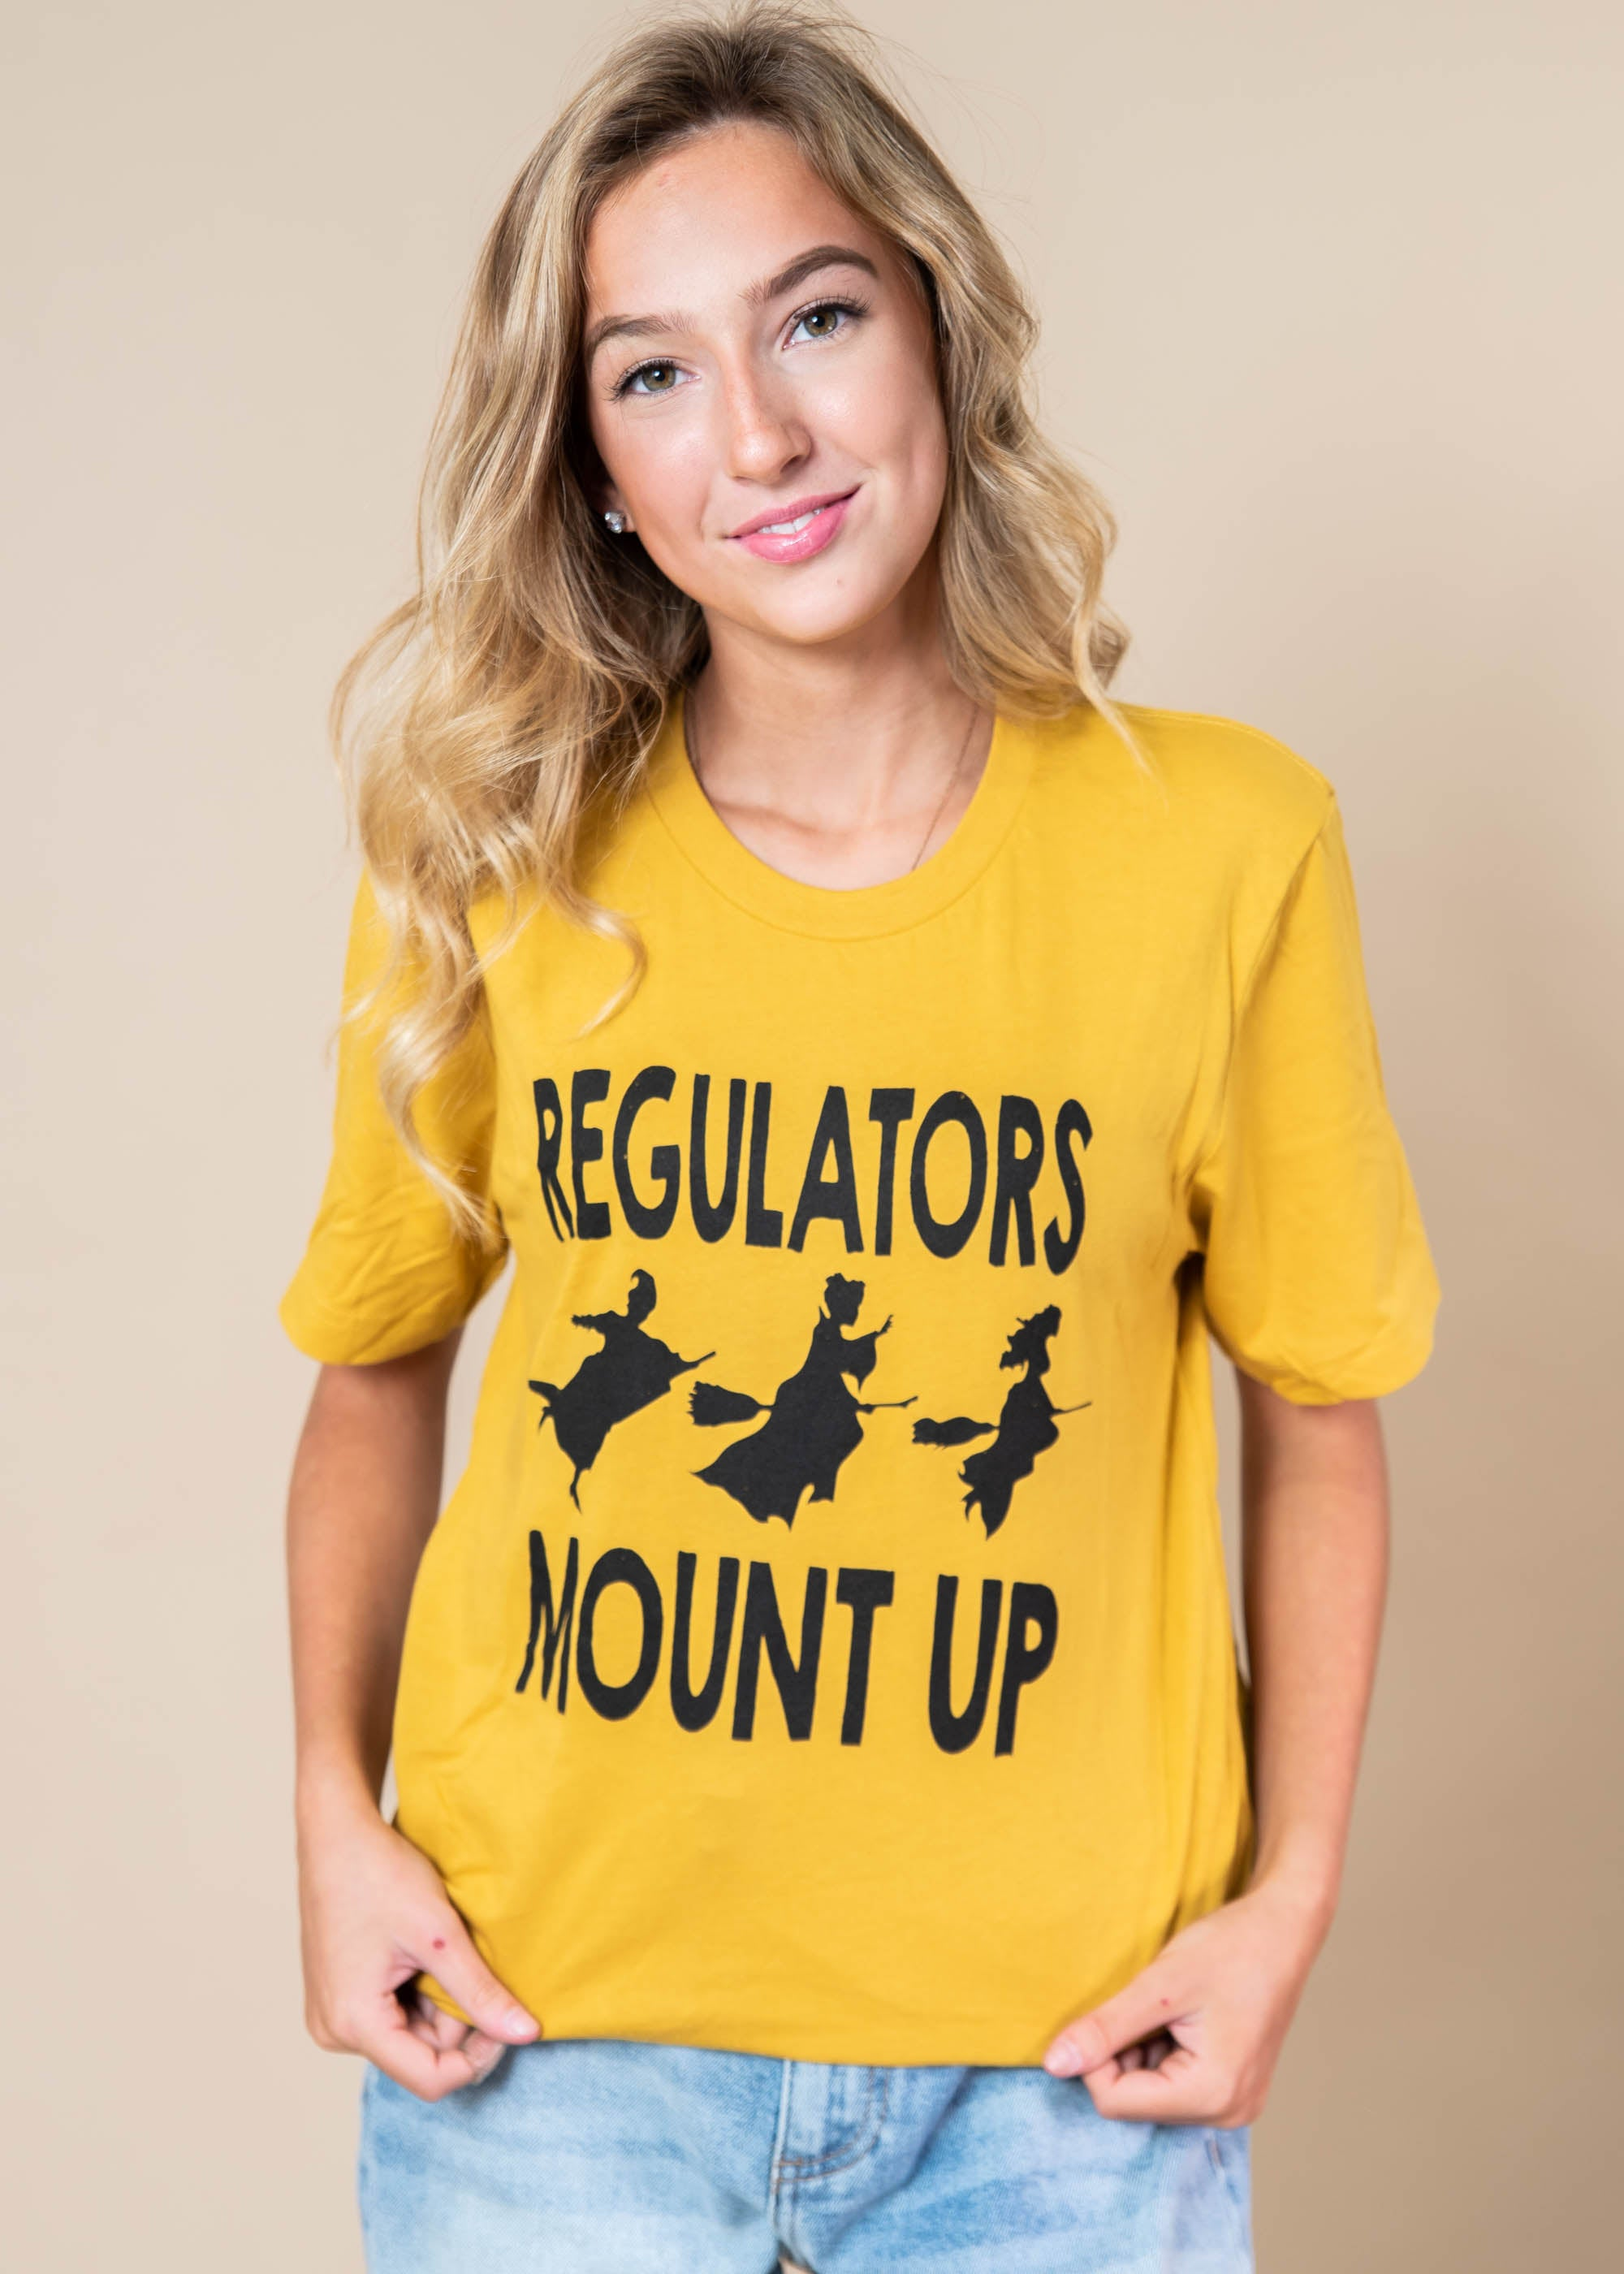 Regulators Mount Up Hocus Pocus Bad Habit Boutique Semantic scholar extracted view of regulators, mount up by ben l trachtenberg. https shopbhb com products regulators mount up hocus pocus